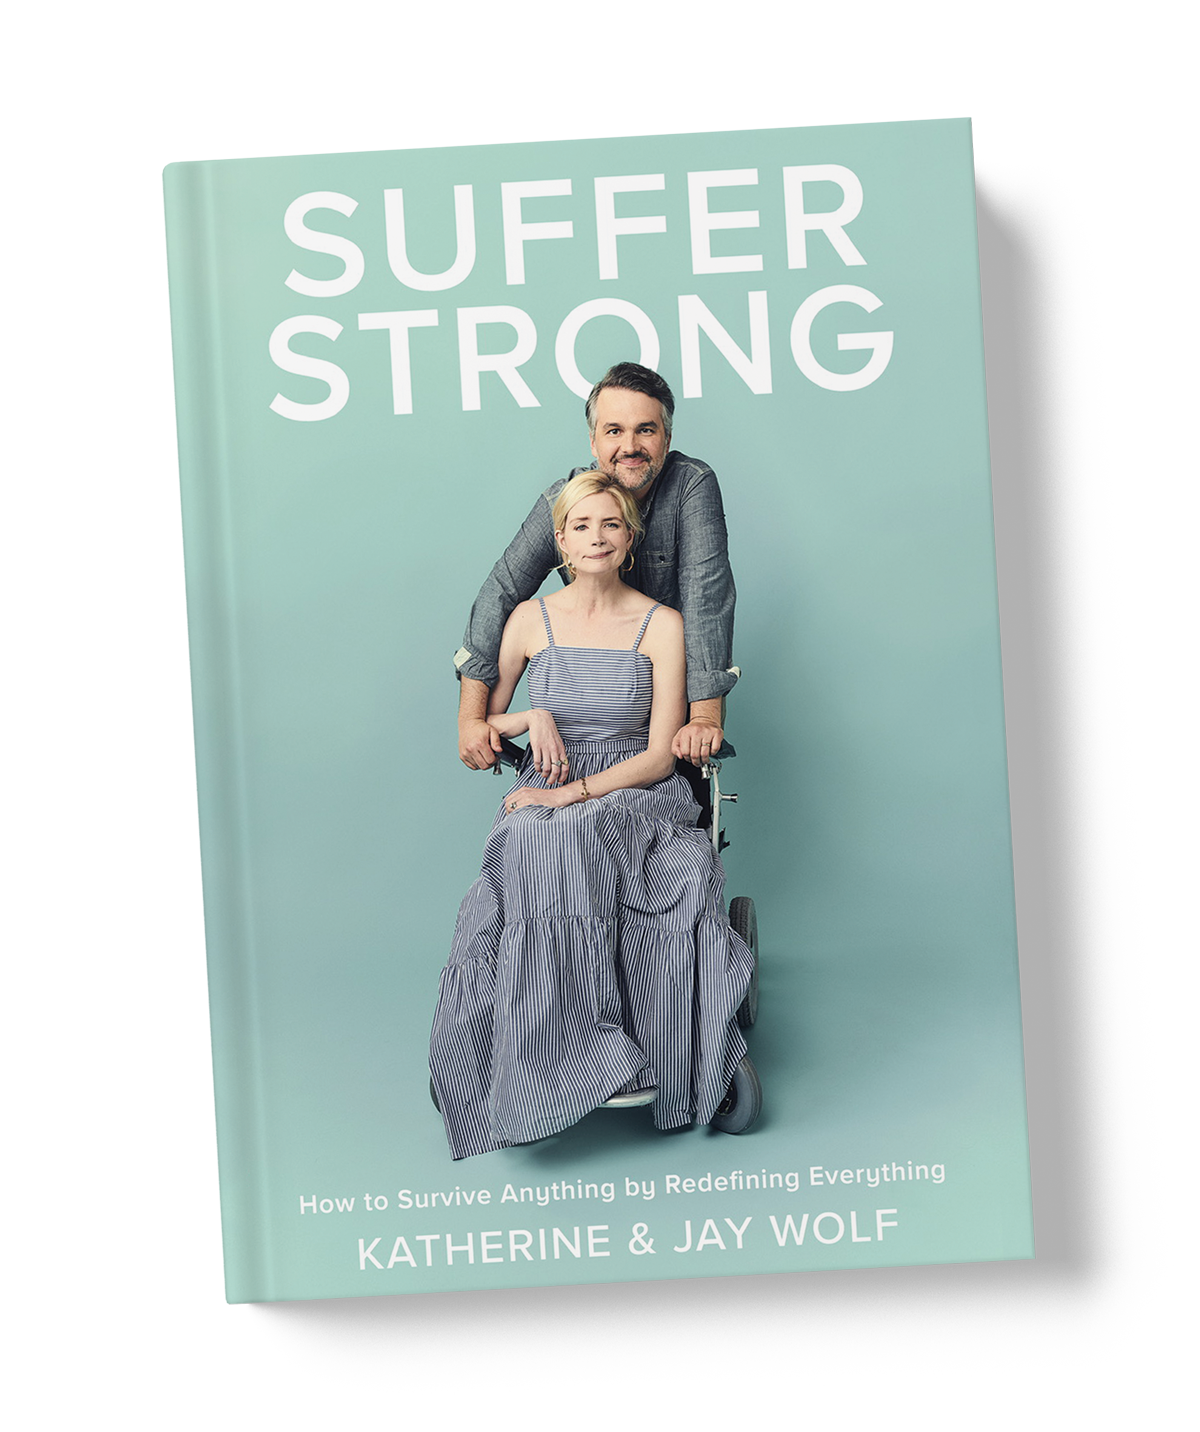 Pre-order to be the first to access - Digital book downloadPodcast series with Katherine & JayAccess to the private @sufferstrong Instagram communityExclusive product discounts